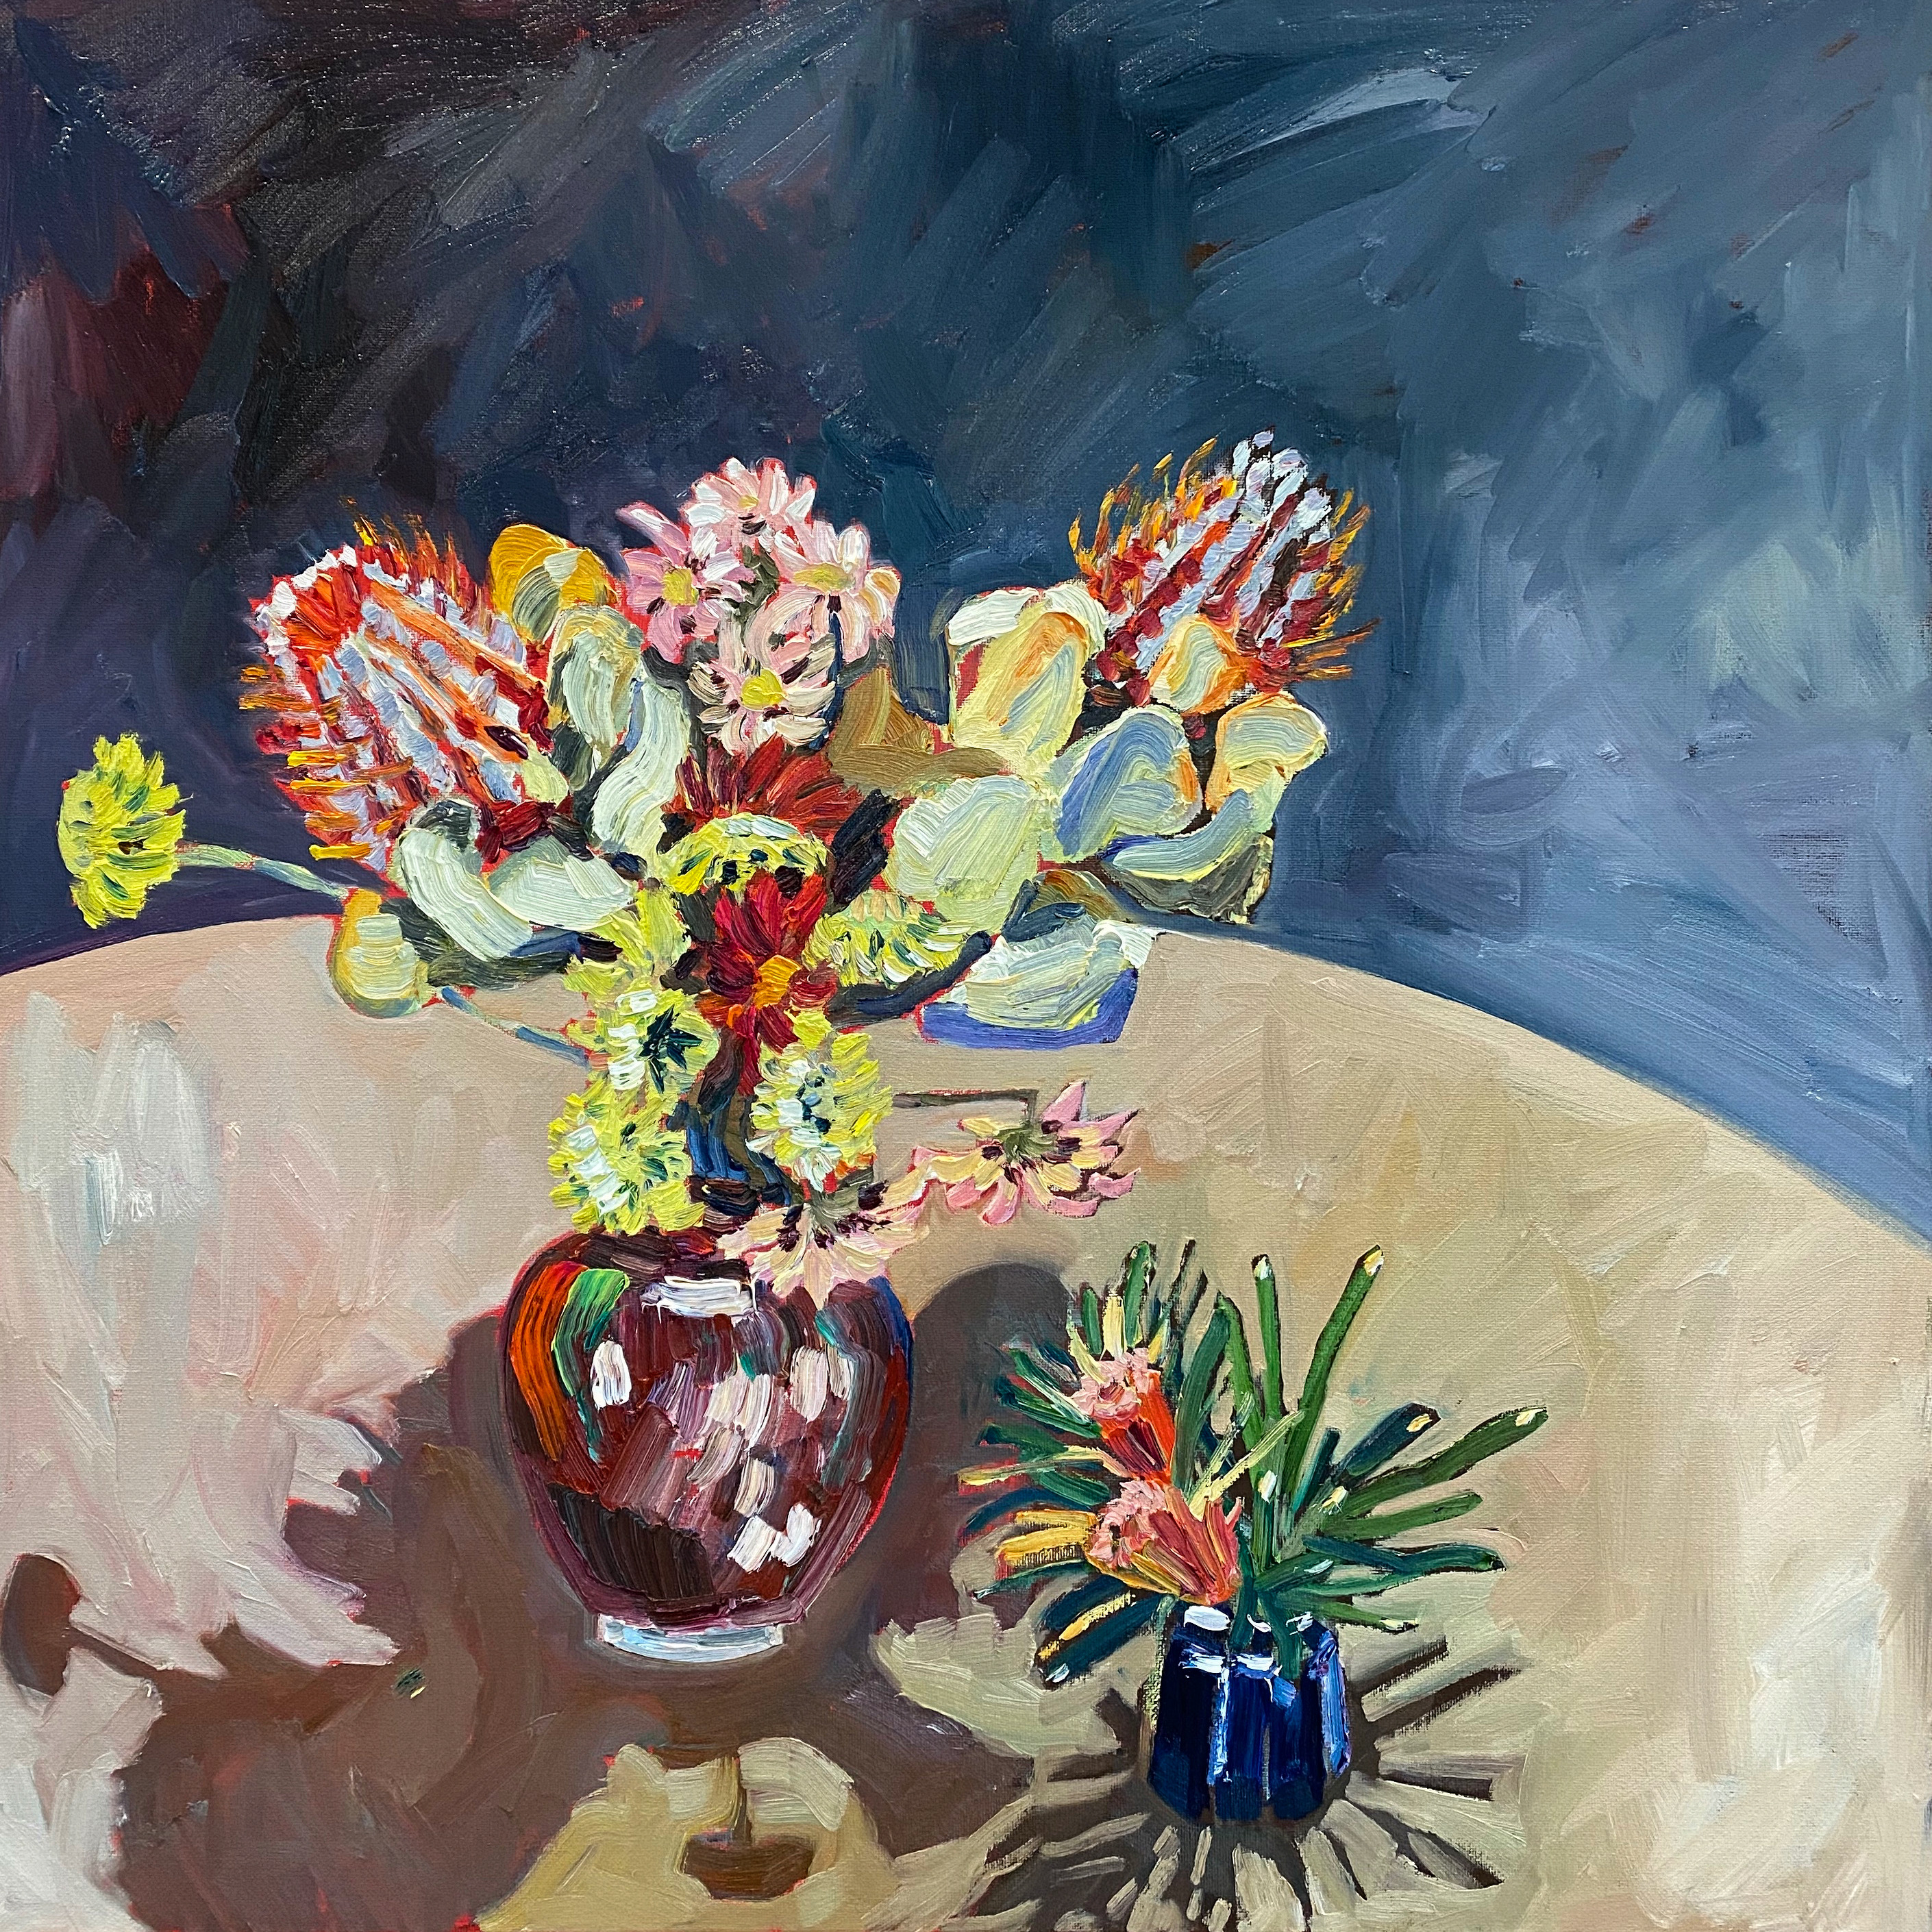 Banksias, Daisys and Devils